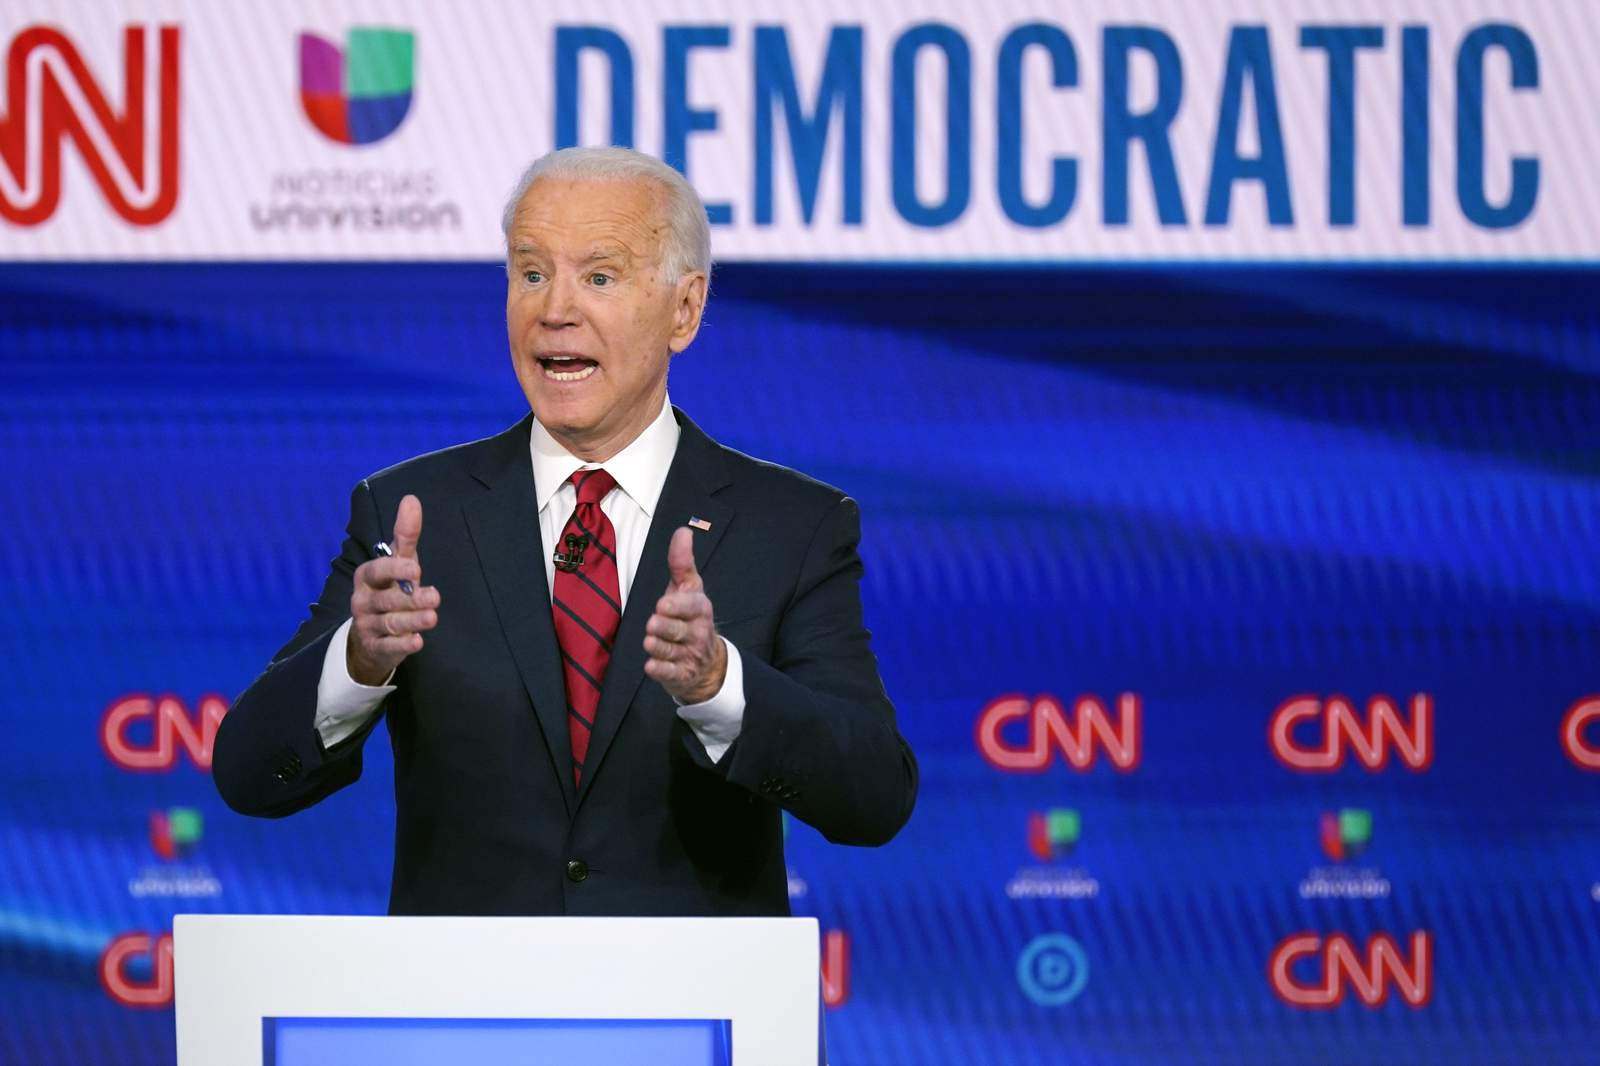 Biden Campaign Limits Press Access During Virtual Fundraiser